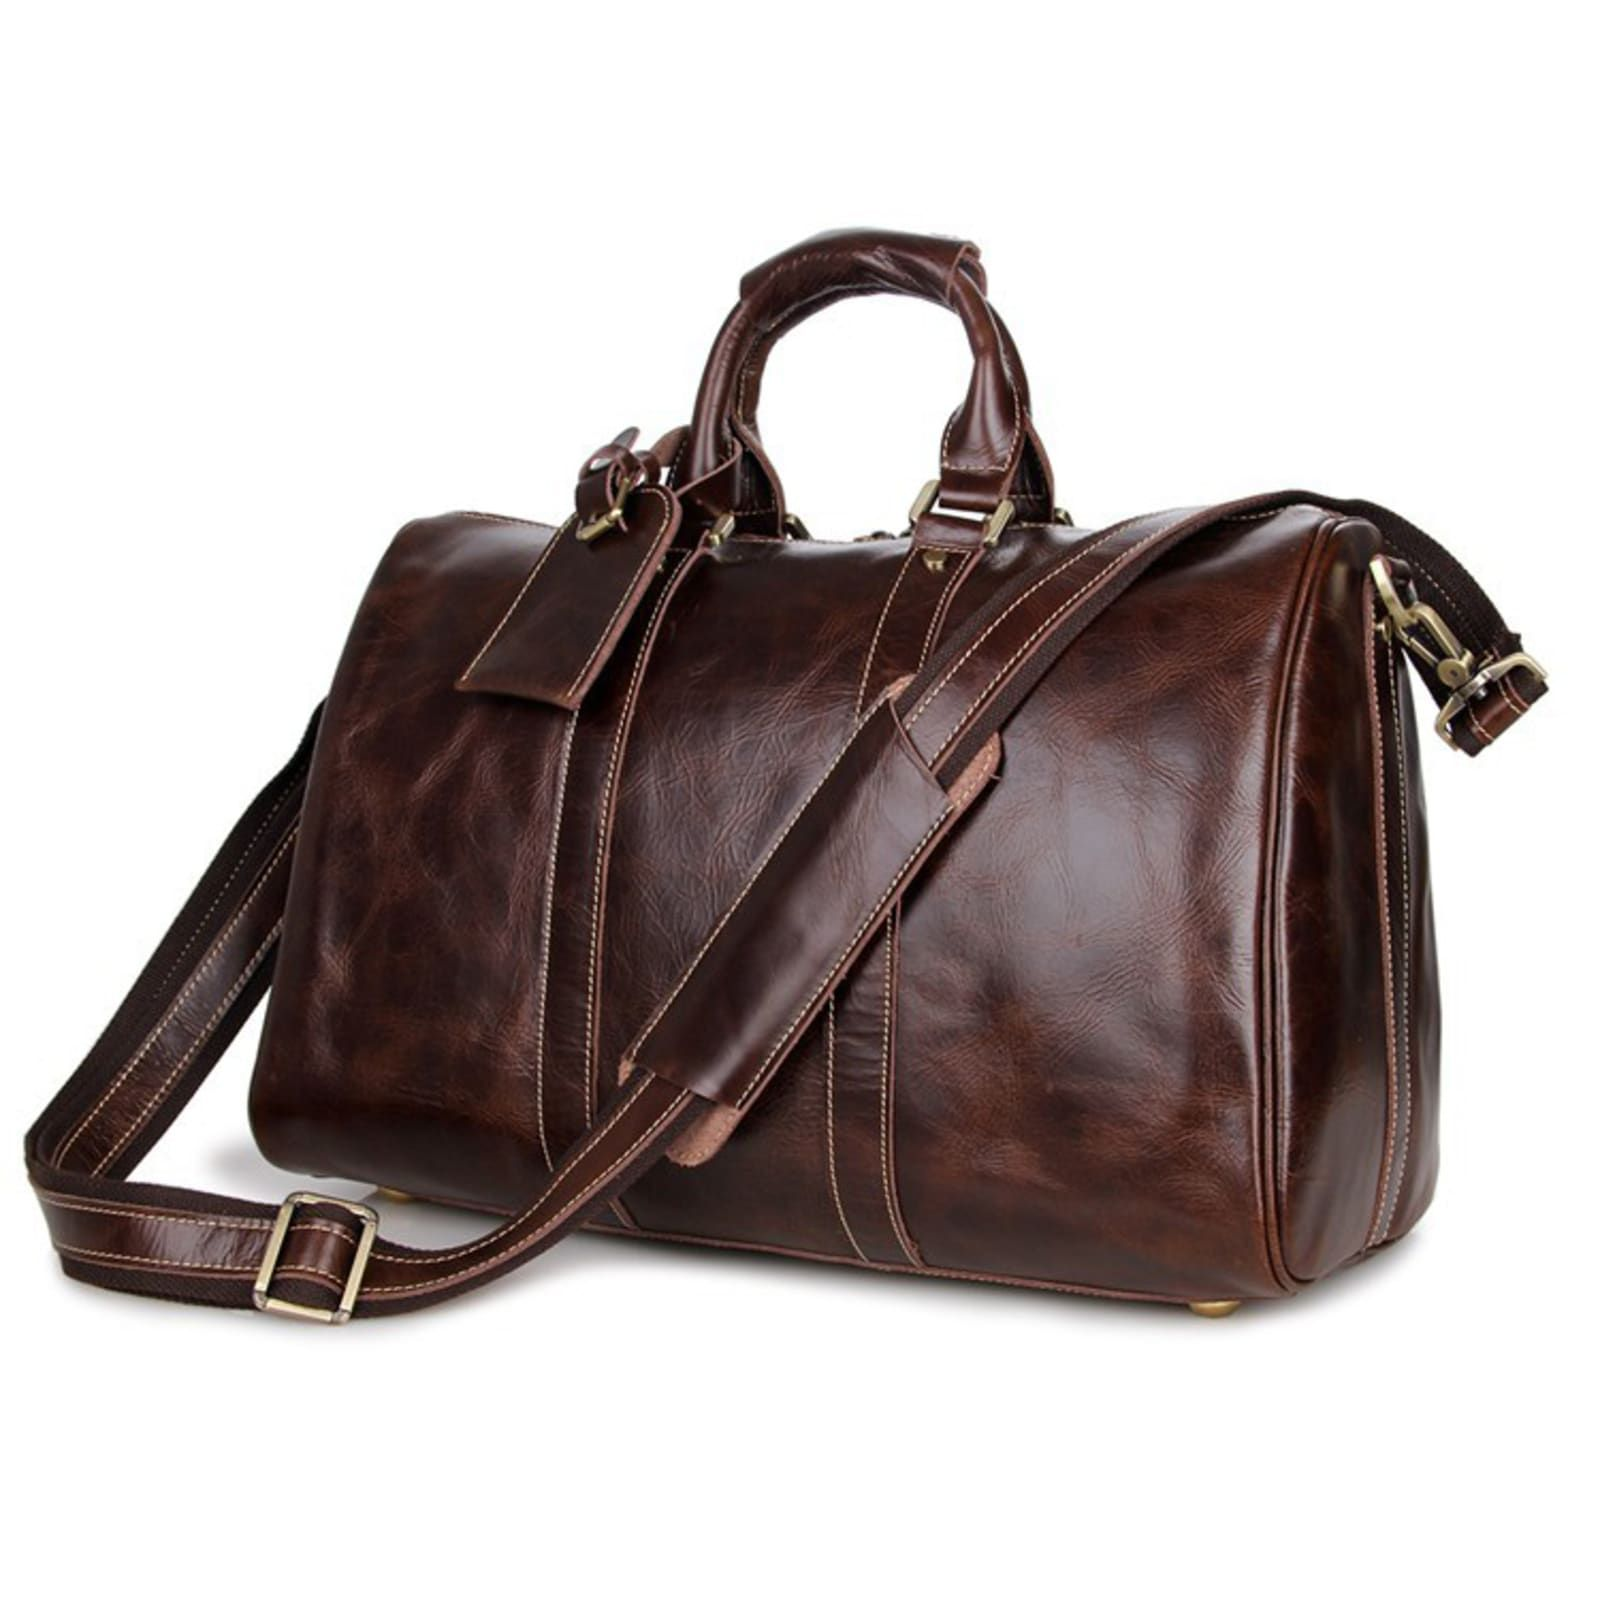 Stylish Brown Leather Holdall | In stock! | Delton Bags – Travel Gift Bag & Givaways Ideas